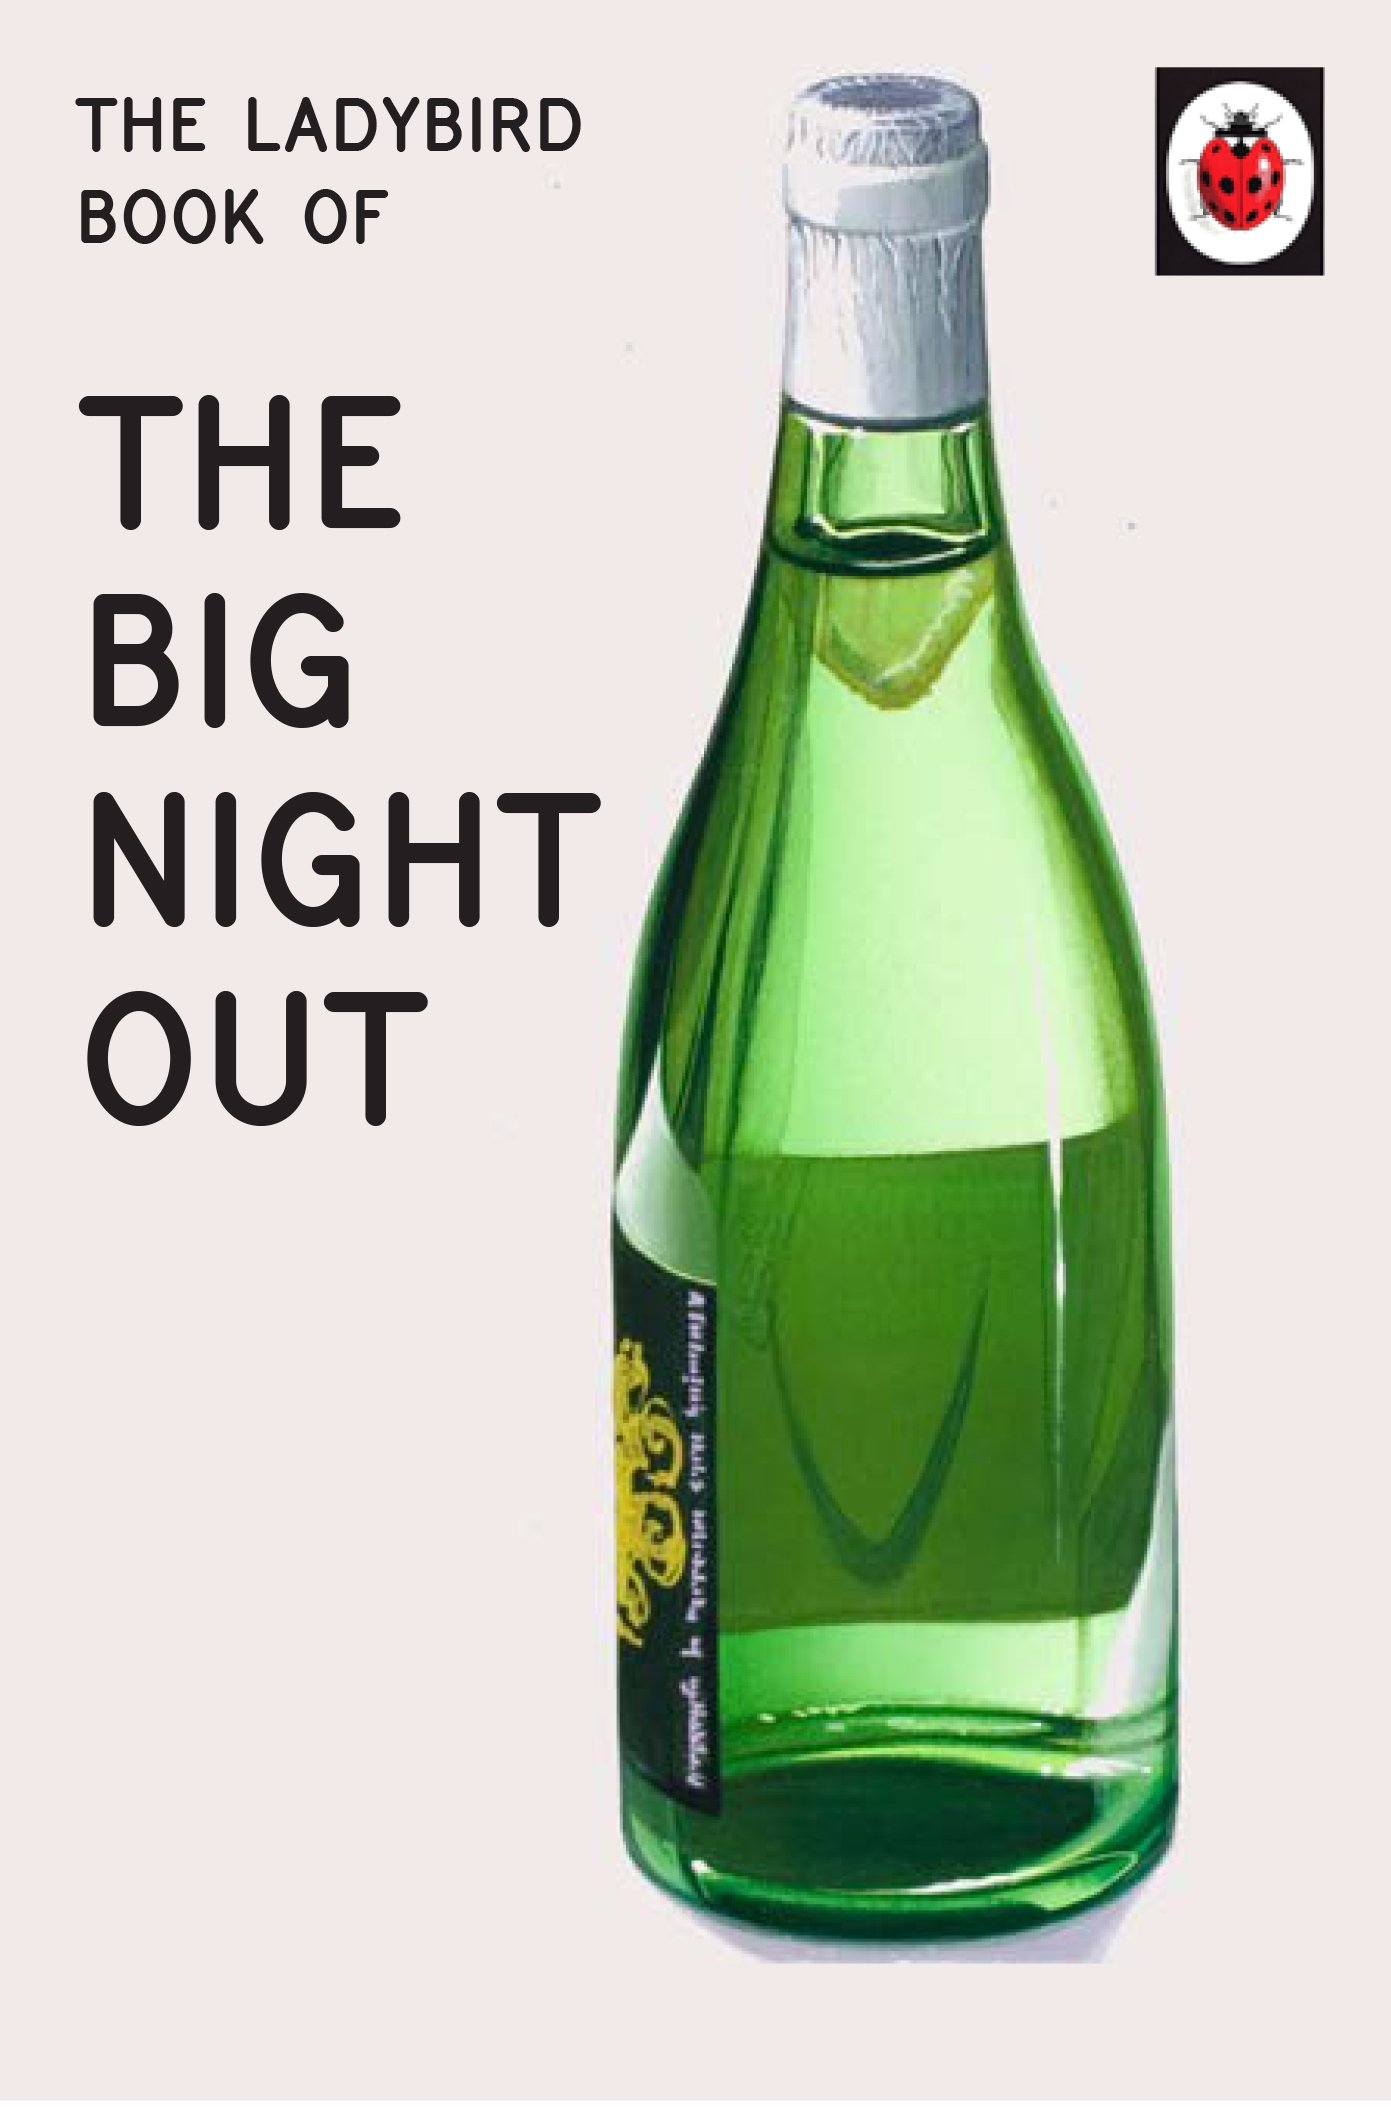 The Ladybird Book of The Big Night Out (Ladybird for Grown-Ups) by Penguin UK